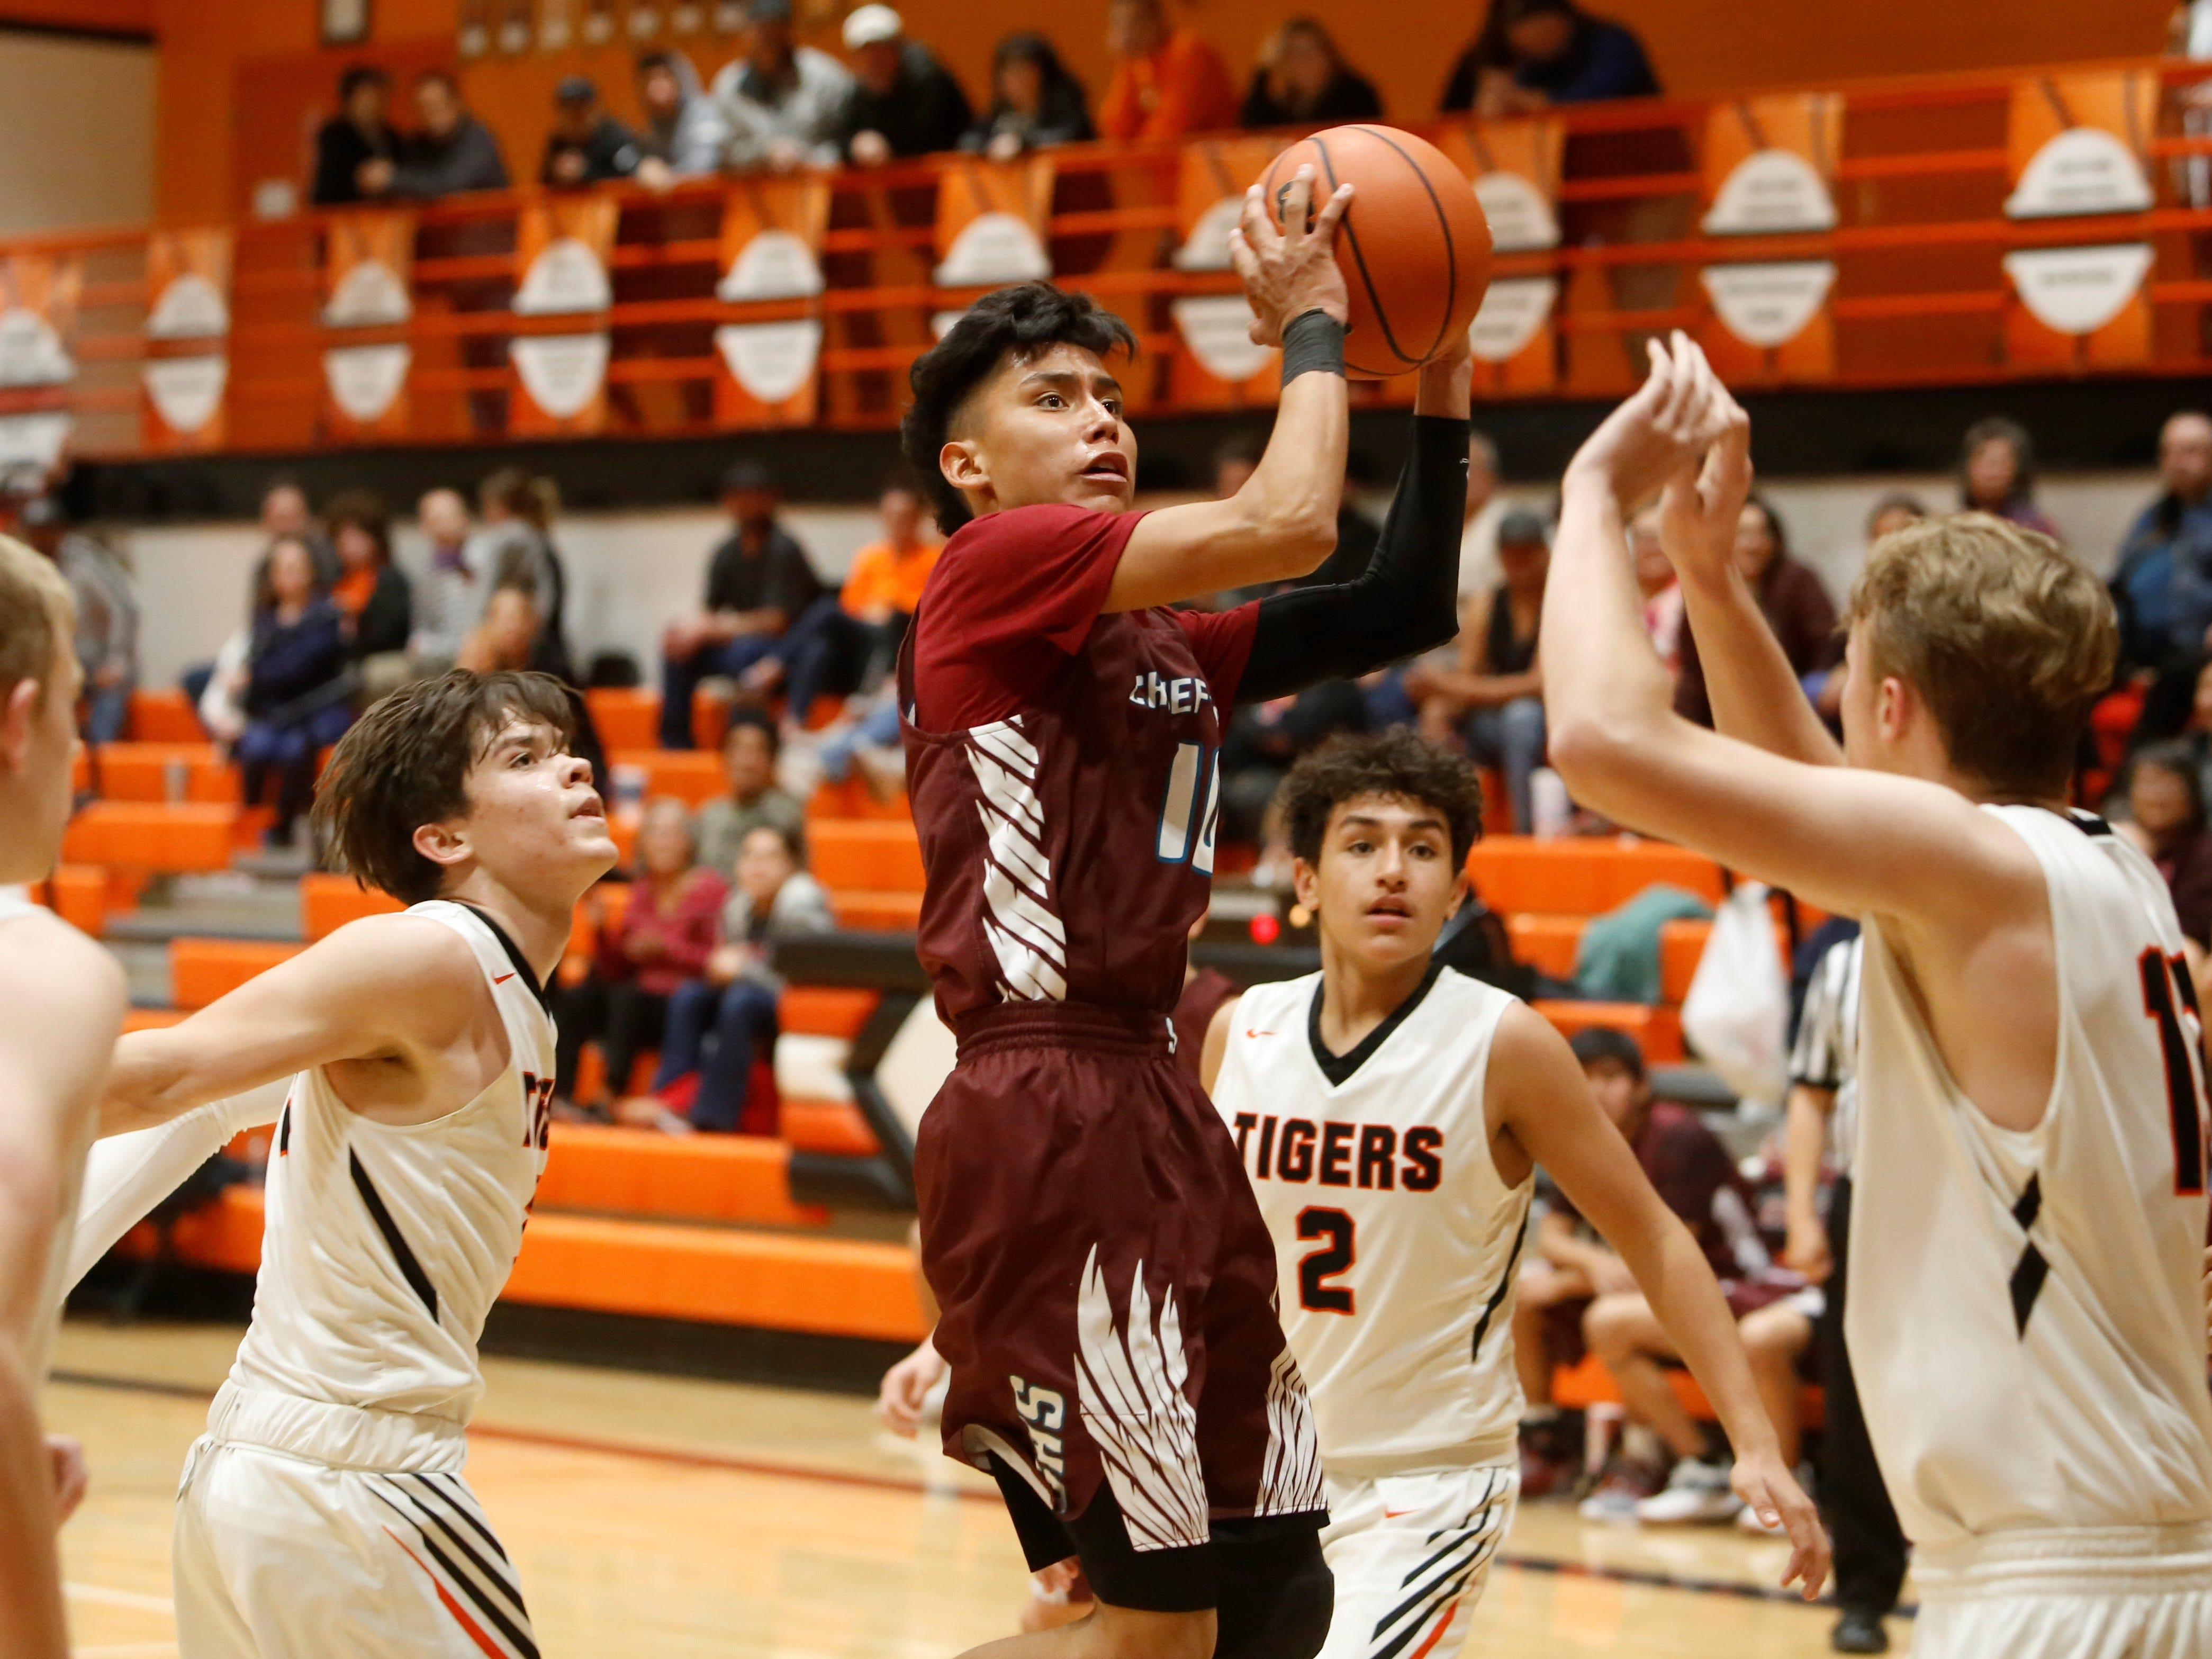 Shiprock's Trevor Etcitty shoots and makes a contested basket against Aztec during Thursday's District 1-4A game at Lillywhite Gym in Aztec.